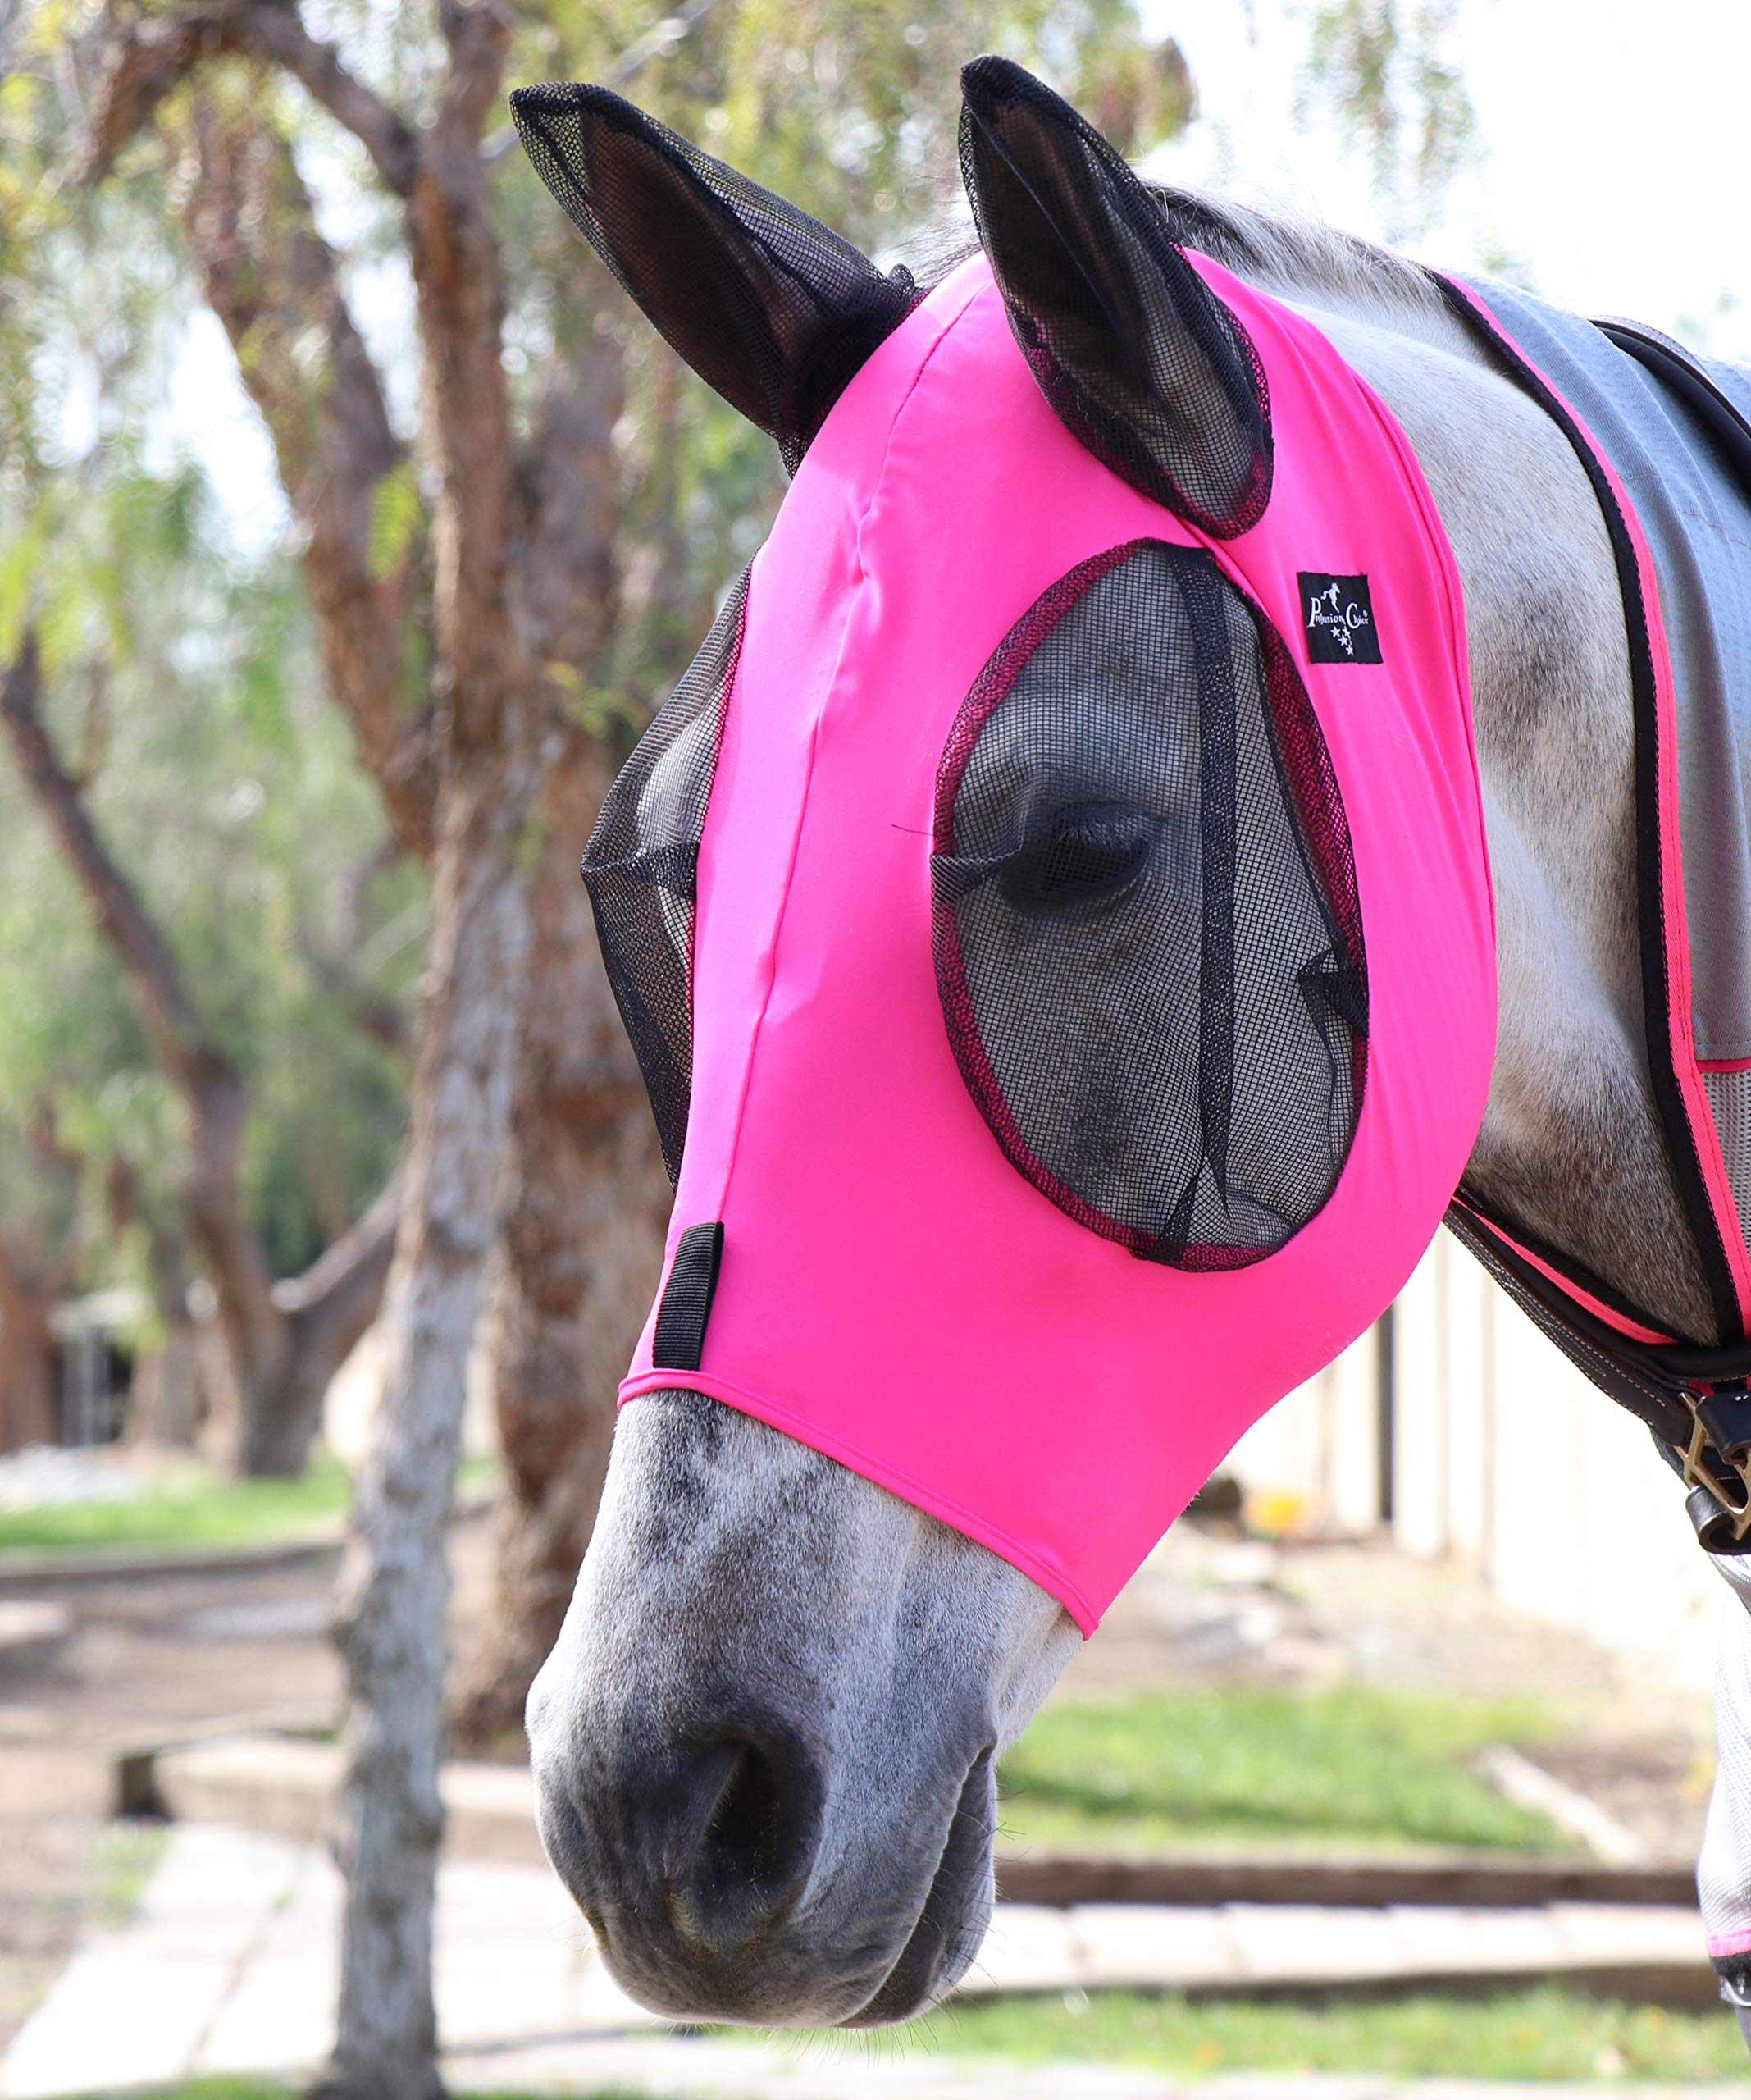 Professional's Choice Comfort Fit Lycra Horse Equine Fly Mask Mesh Ears (Horse, Pink) by Professional's Choice